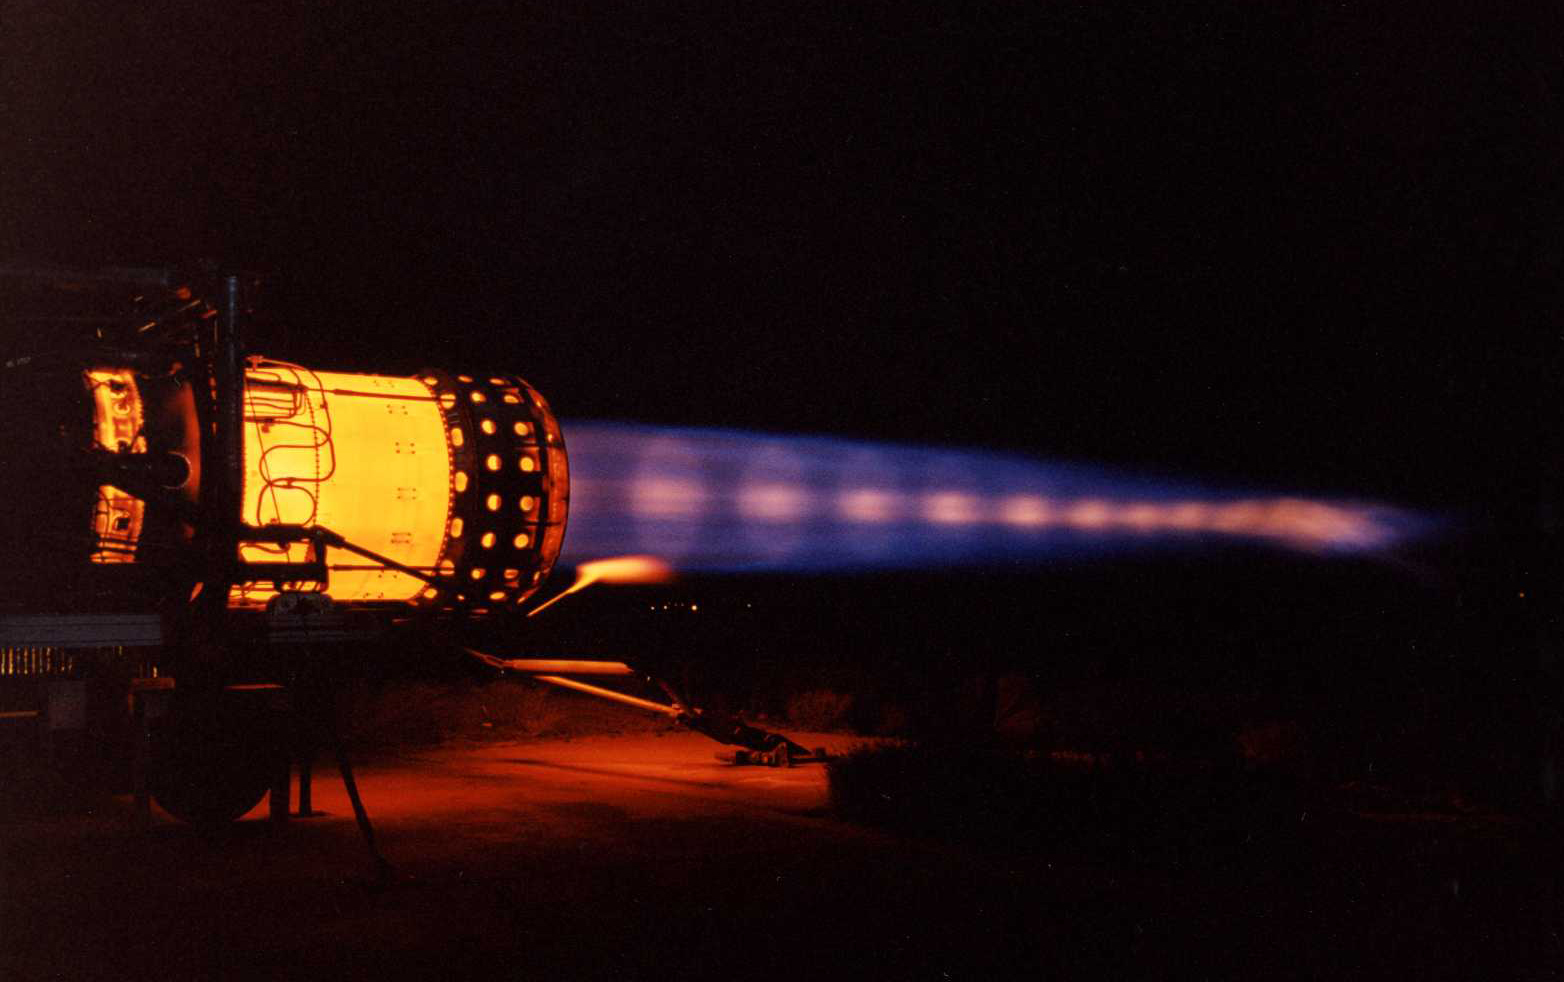 hight resolution of last sr 71 blackbird engine test in full afterburner at edwards air force base the aviationist